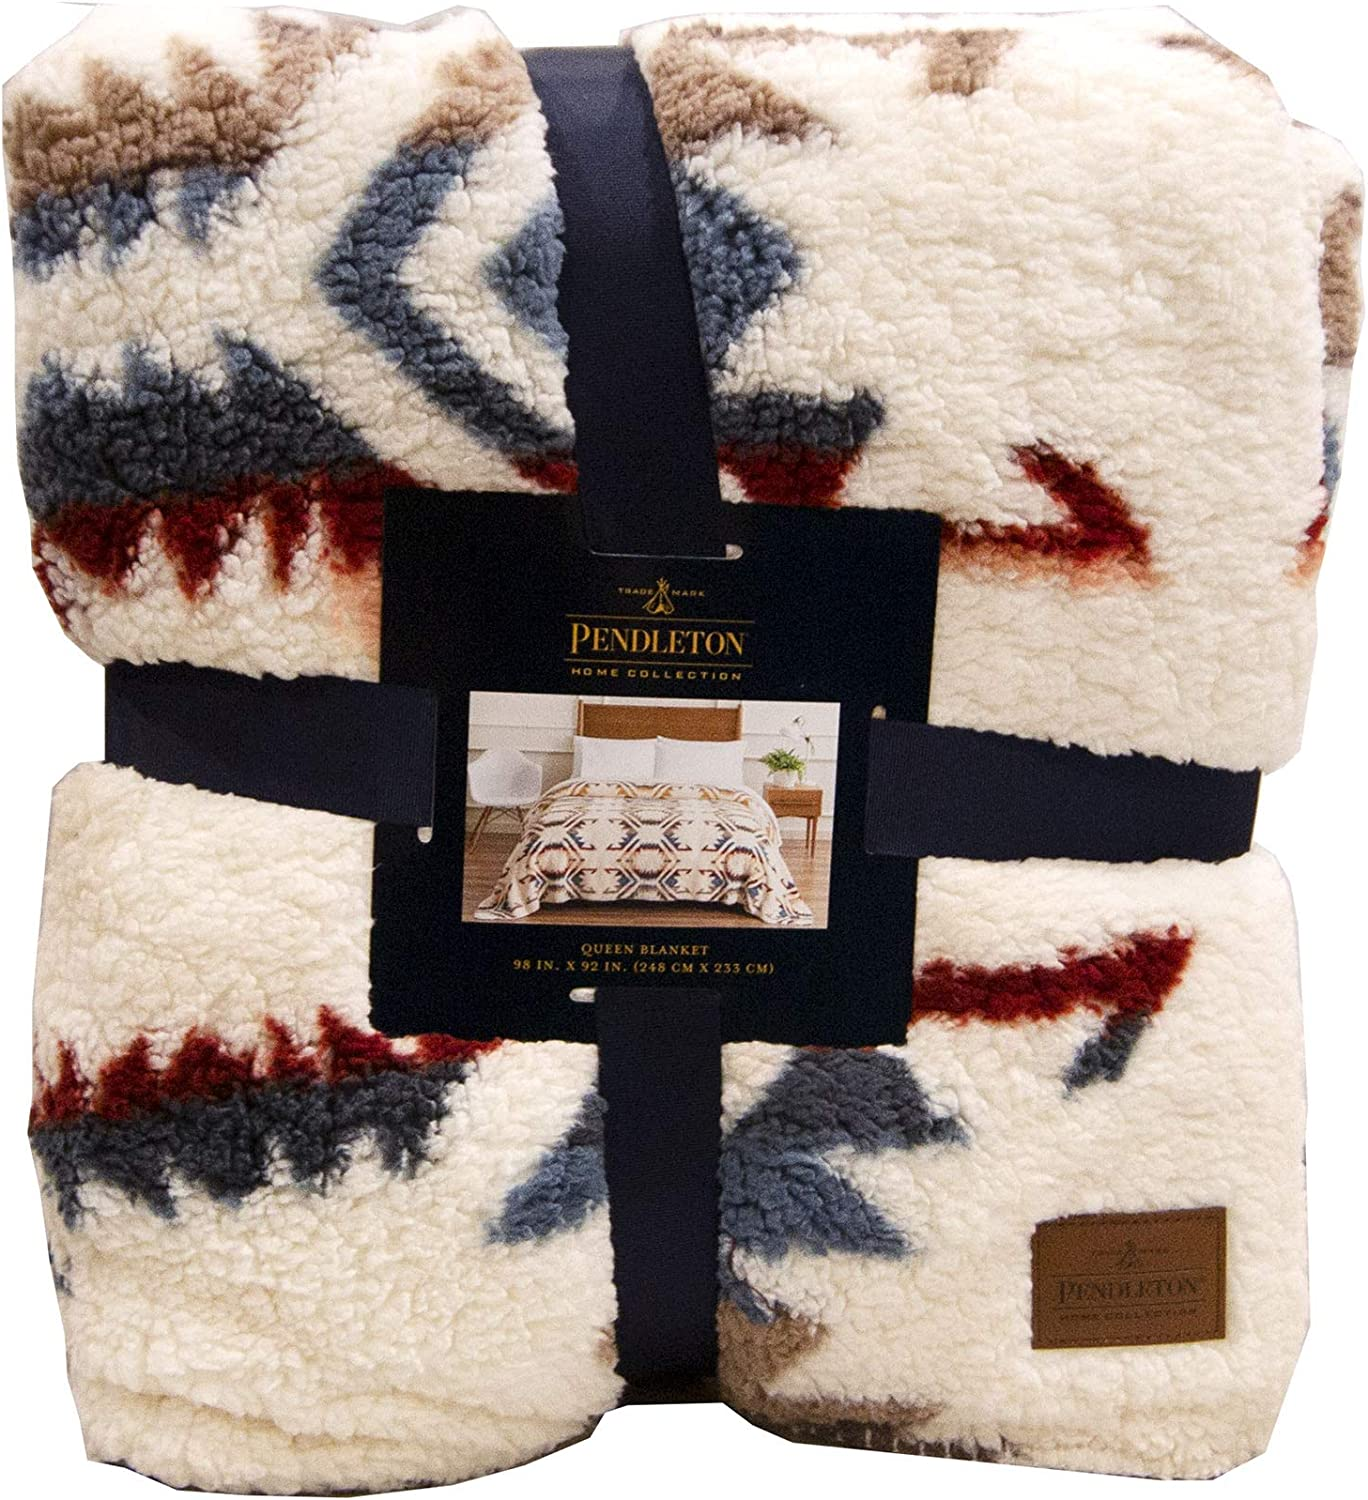 Pendleton Home Collection Twin Blanket - White Sand (Queen)